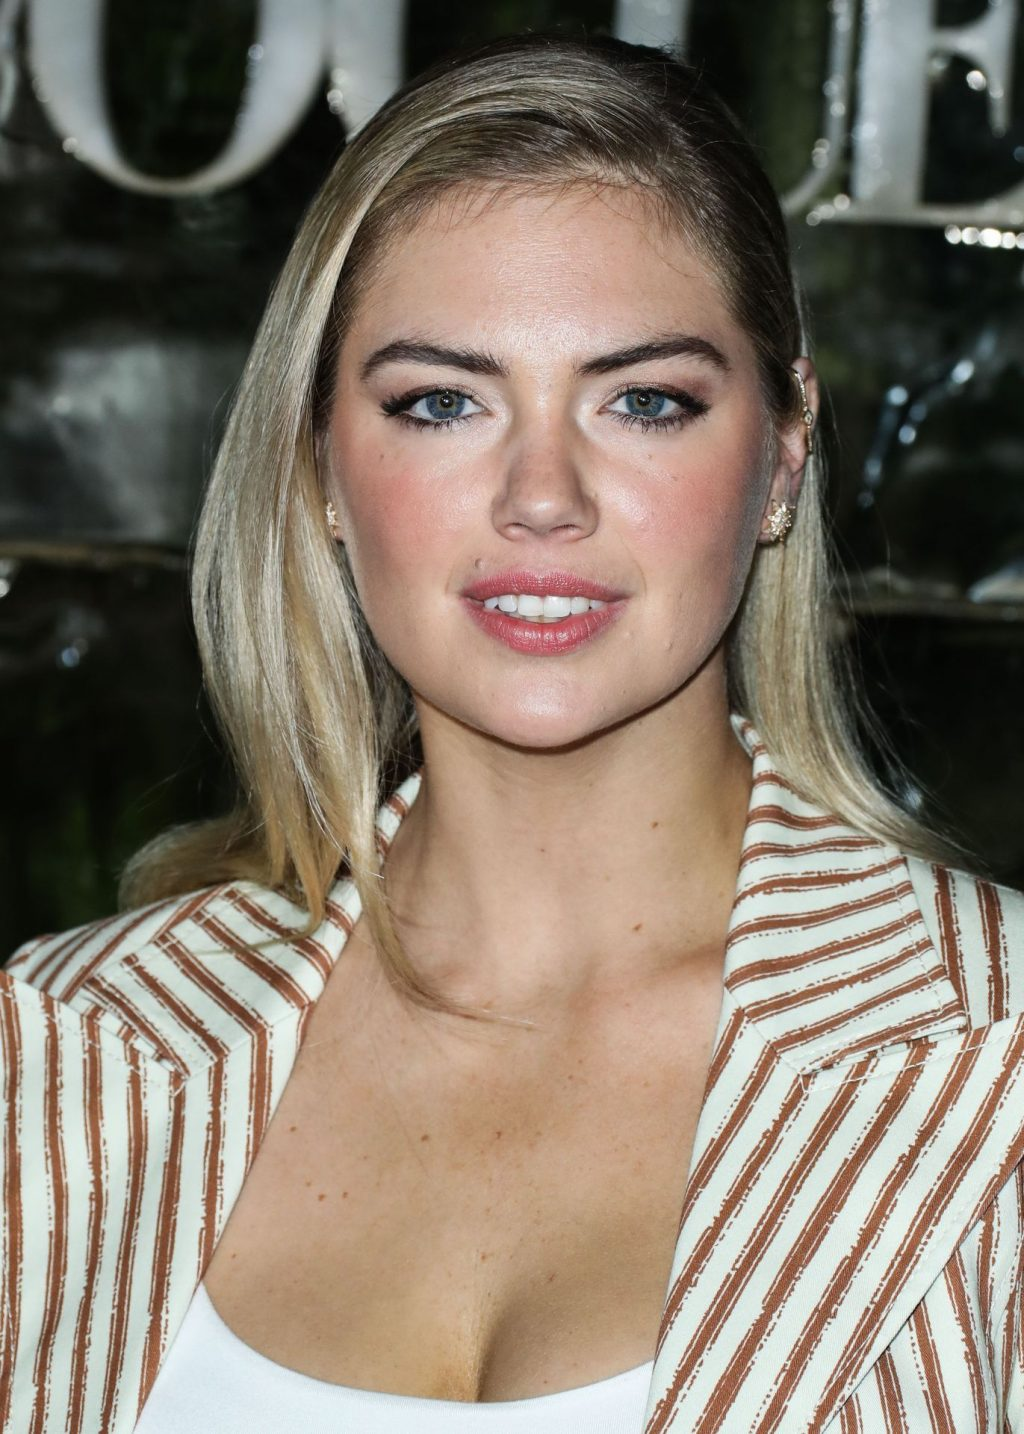 Kate Upton Sexy The Fappening Blog 62 1024x1434 - Kate Upton Attends Canada Goose And Vogue Cocktails & Conversations (104 Photos)